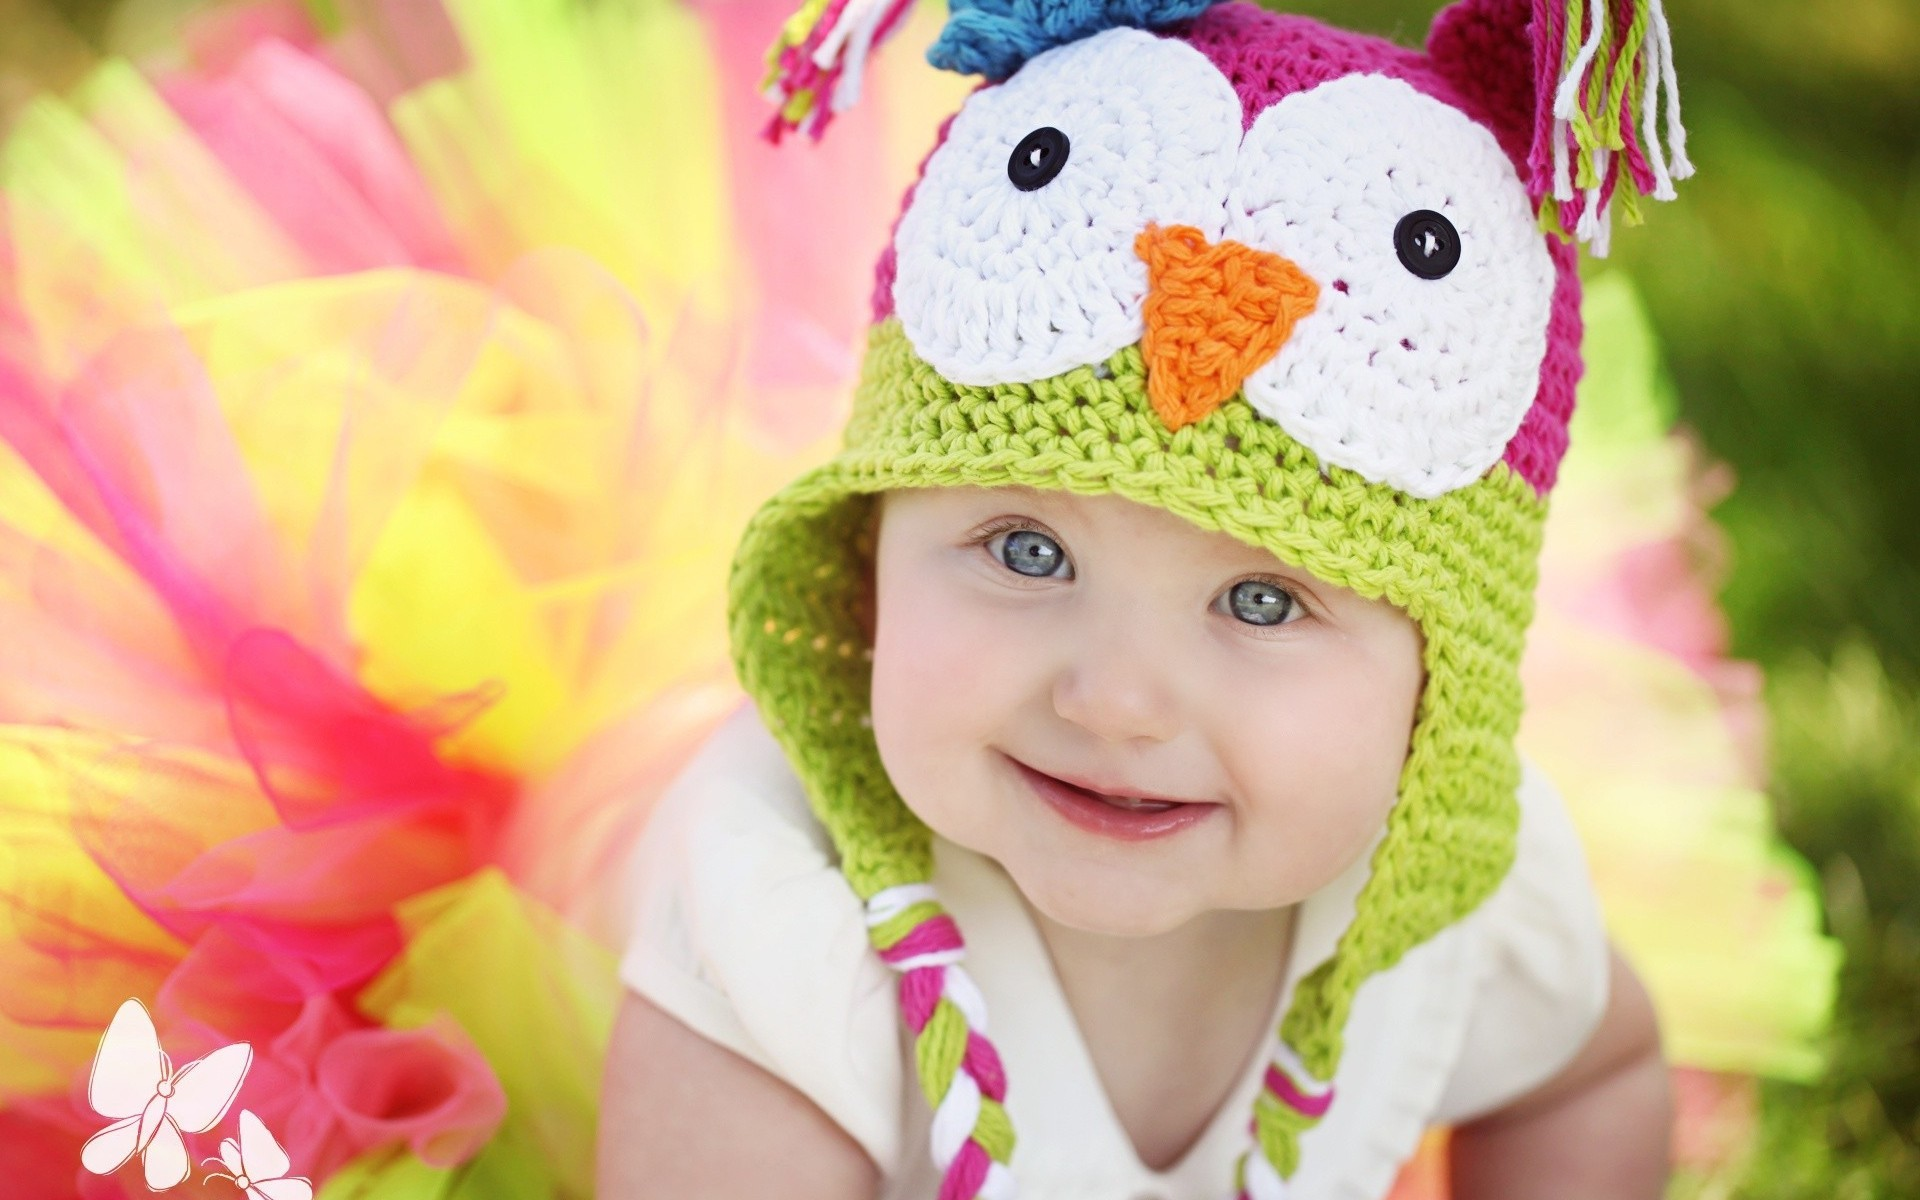 Biggest Collection Of Hd Baby Wallpaper For Desktop And Mobile: Beautiful Babies Wallpapers 2018 (65+ Images